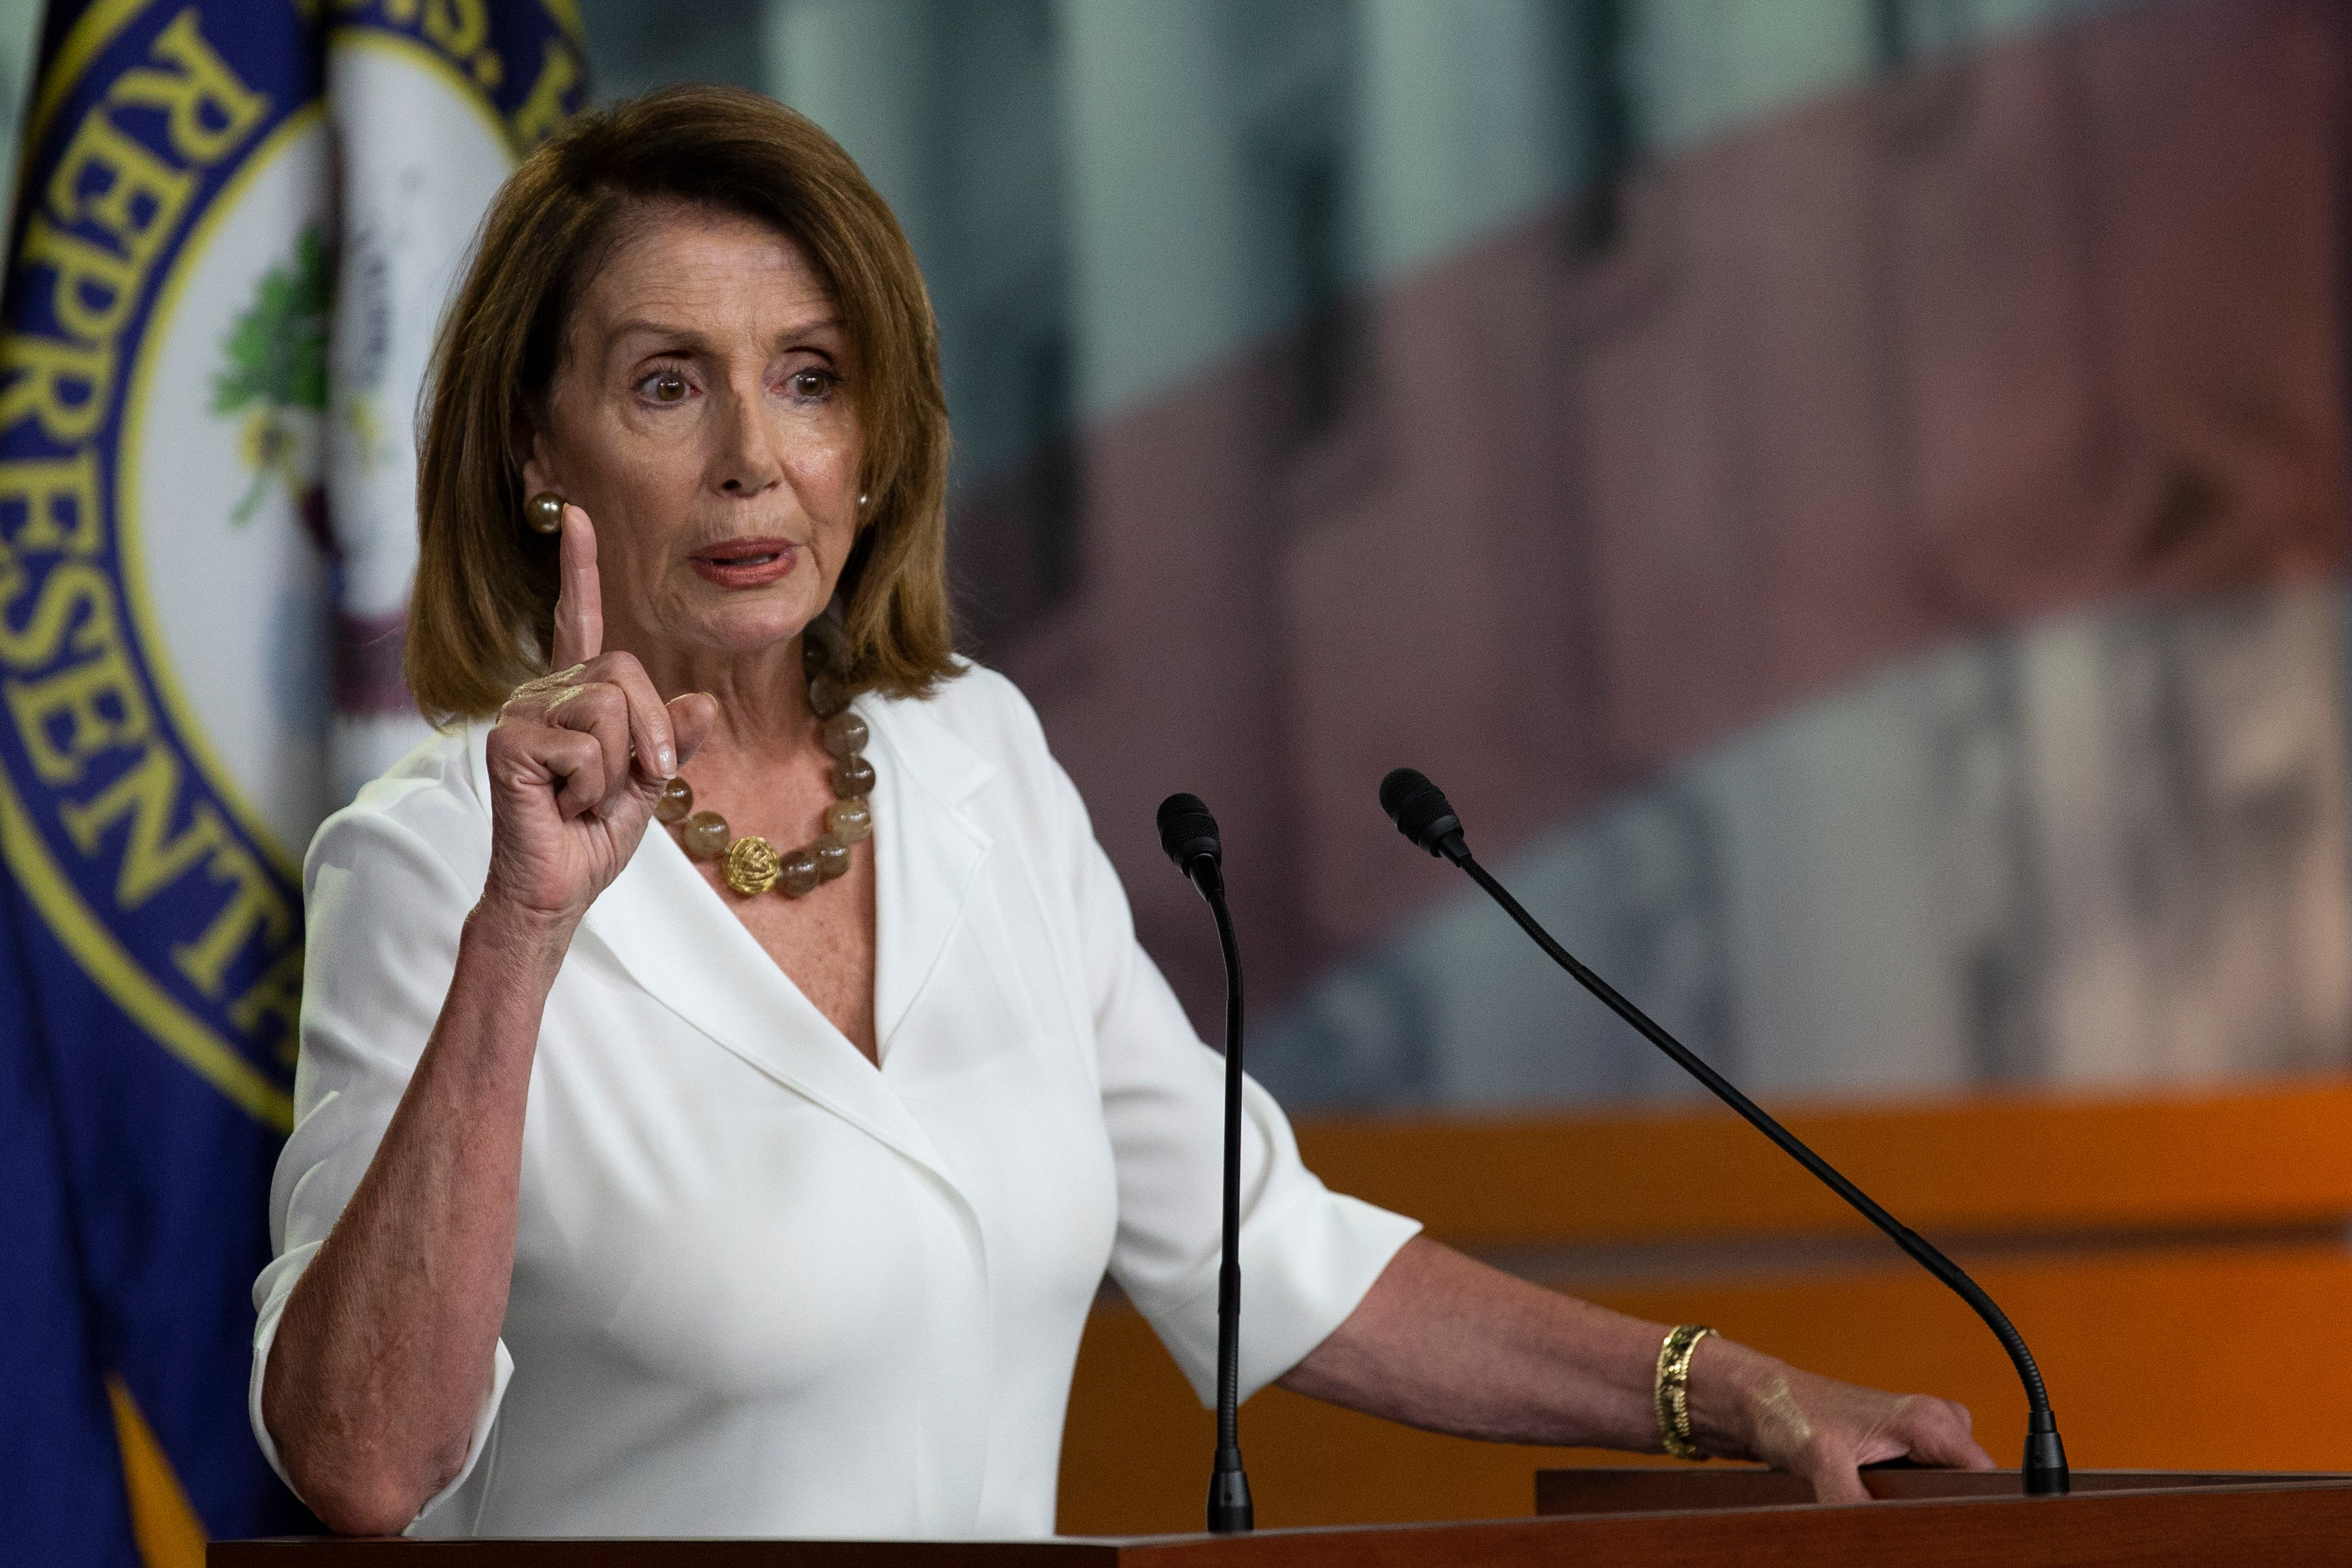 WASHINGTON, DC - JULY 12: House Minority Leader Nancy Pelosi (D-CA) speaks with reporters during her weekly press conference at the Capitol on July 12, 2018 in Washington, DC. (Photo by Alex Edelman/Getty Images)